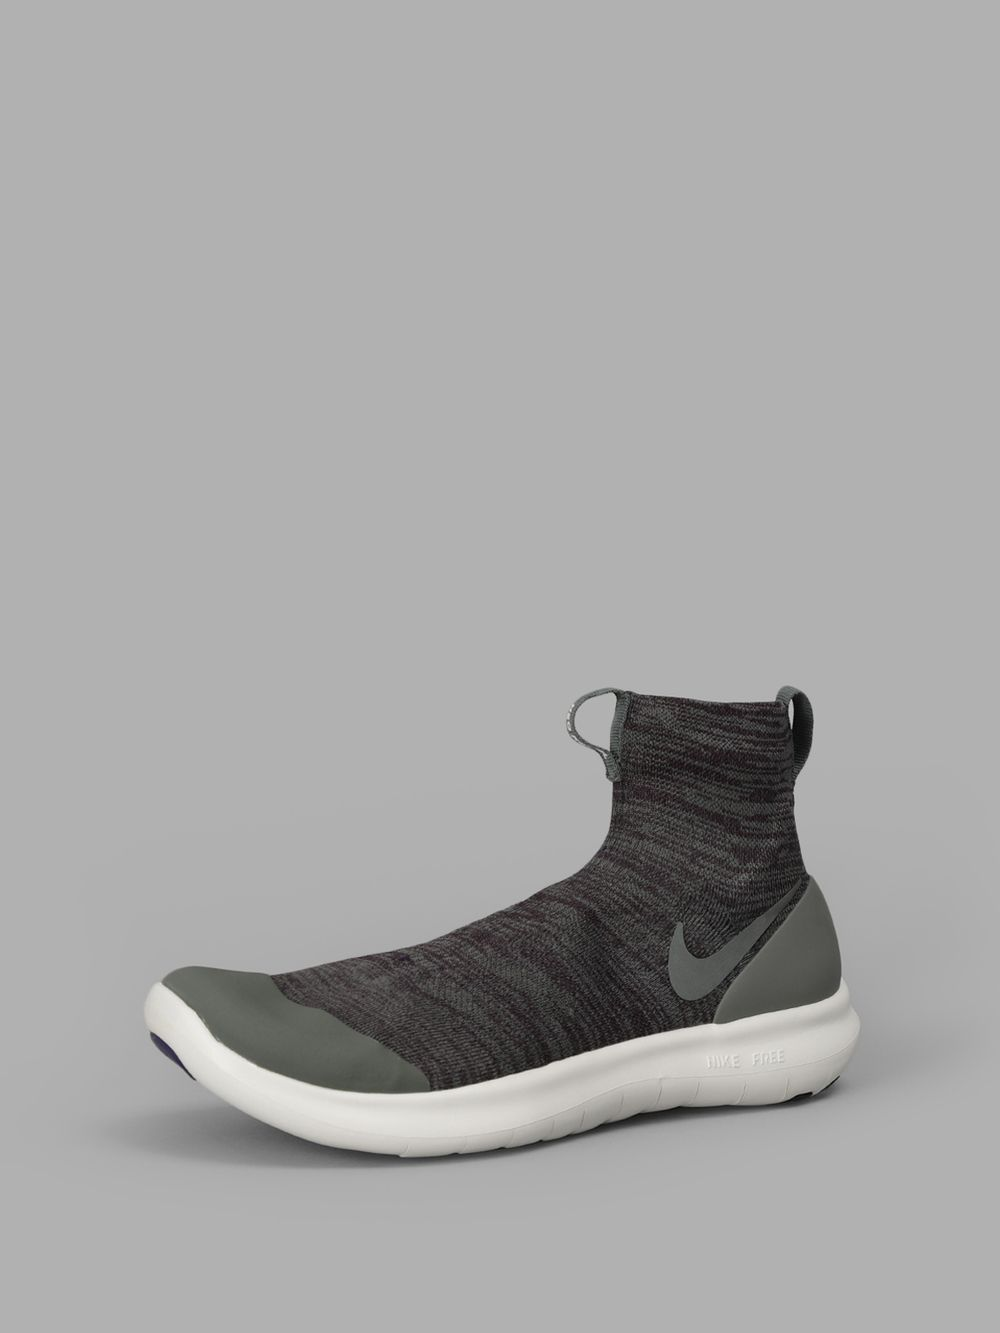 Nike Sneakers AH2181 600   Shoes   Pinterest   Sneakers, Shoes and Nike ea49954f1767